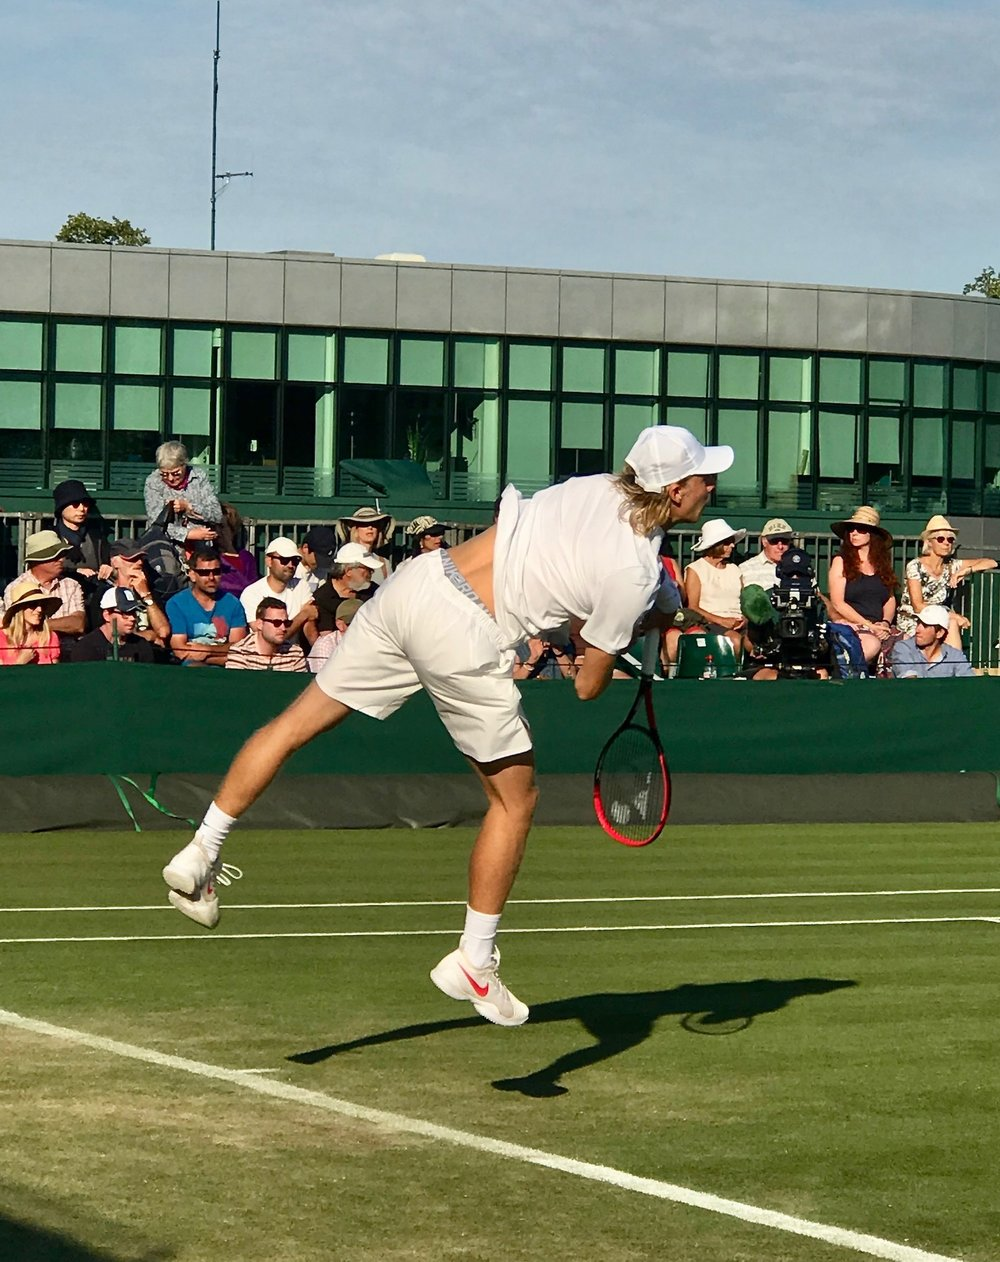 Ace Serve By Denis Shapovalov Wimbledon 2018.jpg